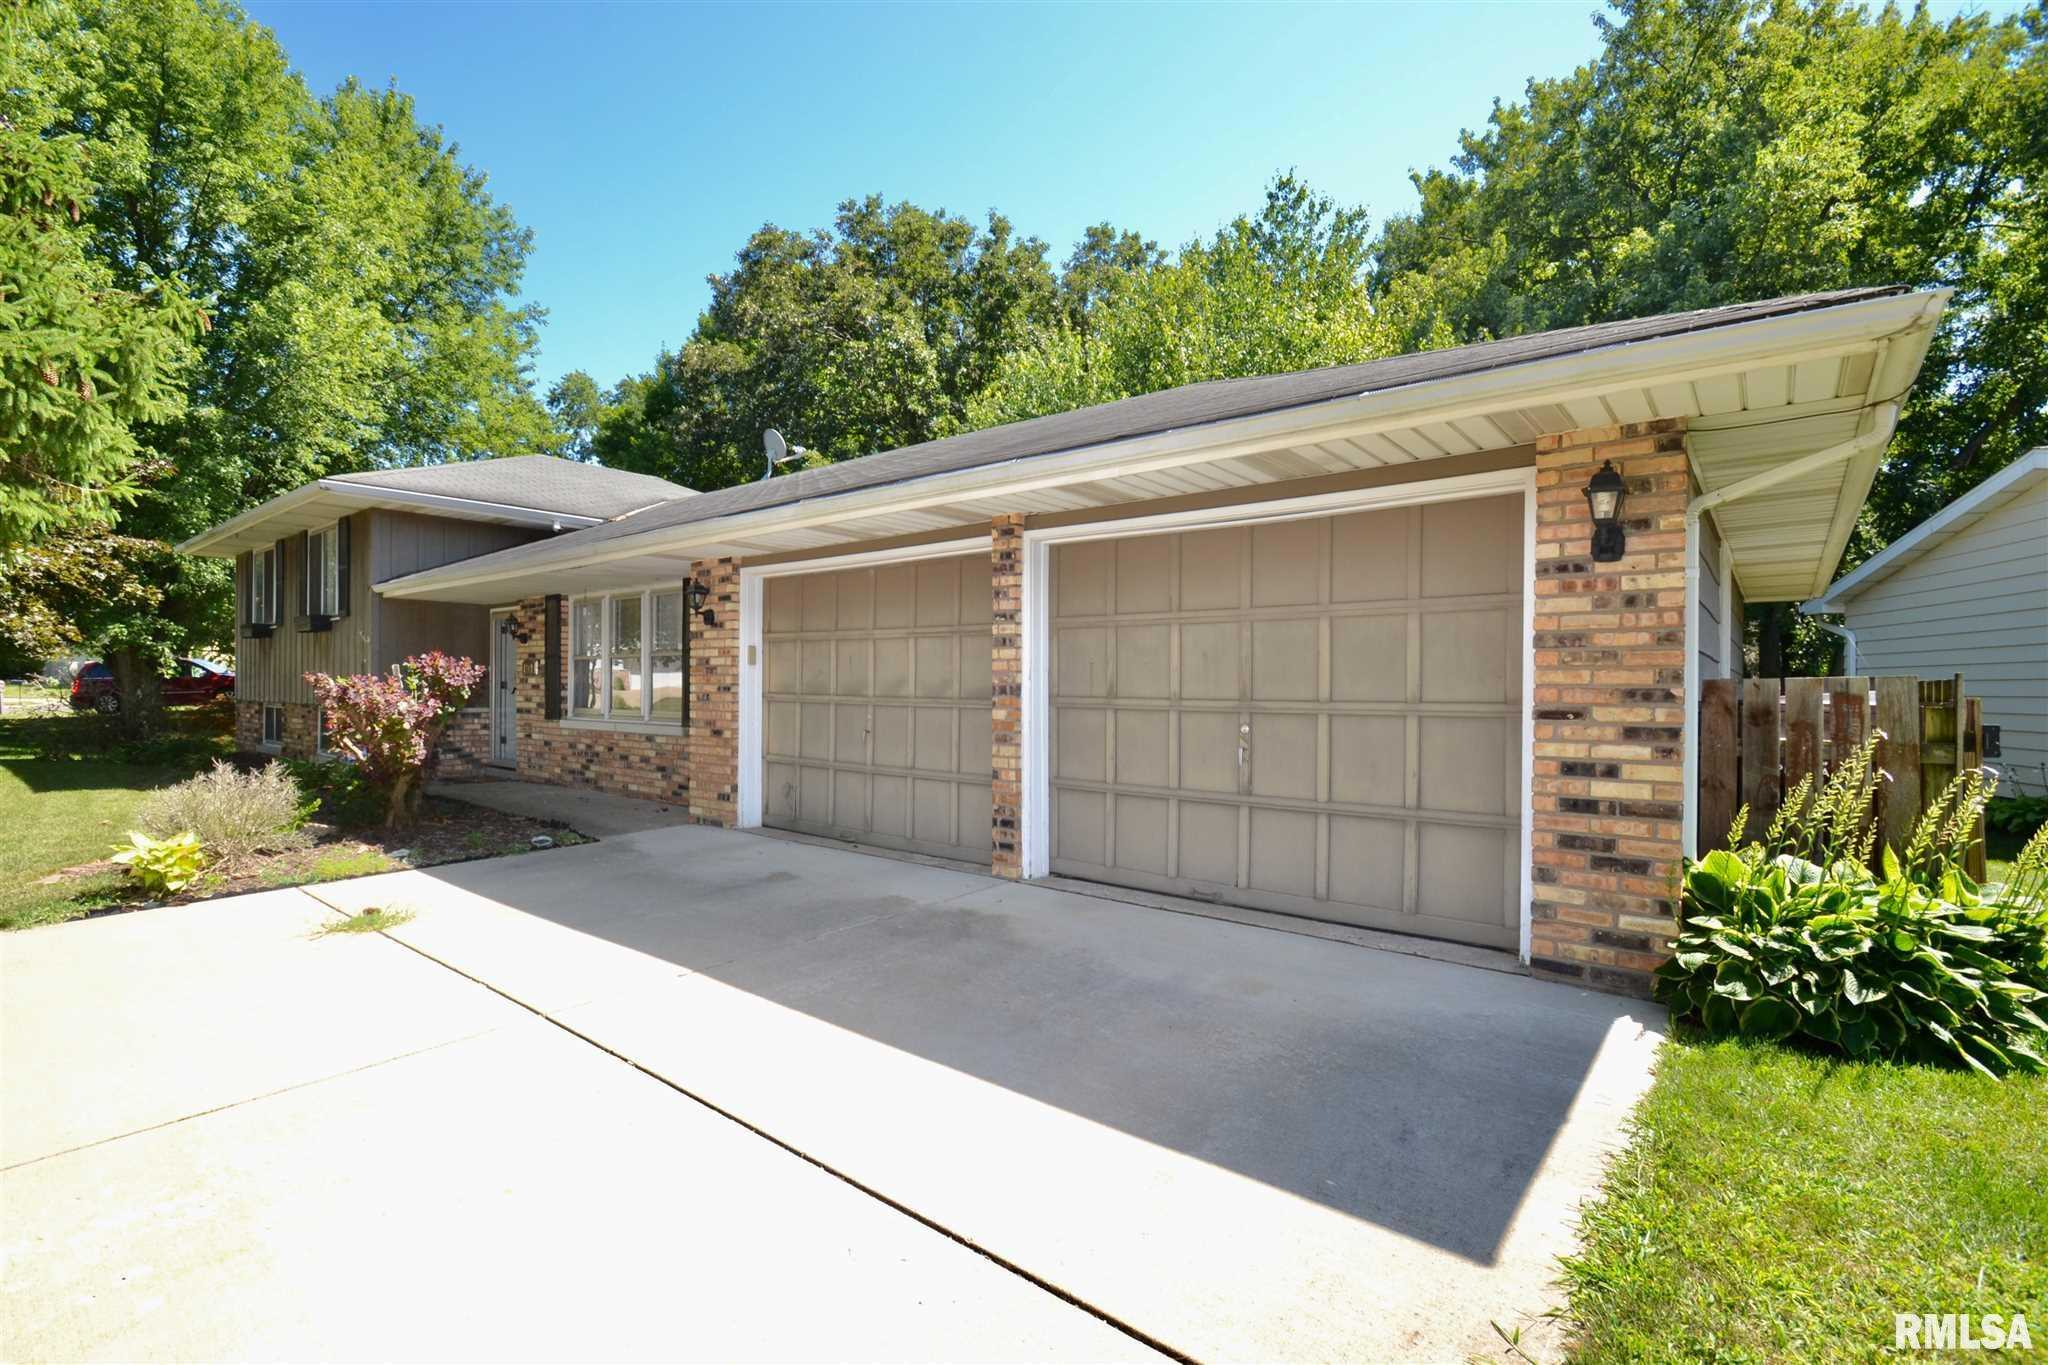 $159,900 - 4Br/3Ba -  for Sale in Lynnhurst, Peoria